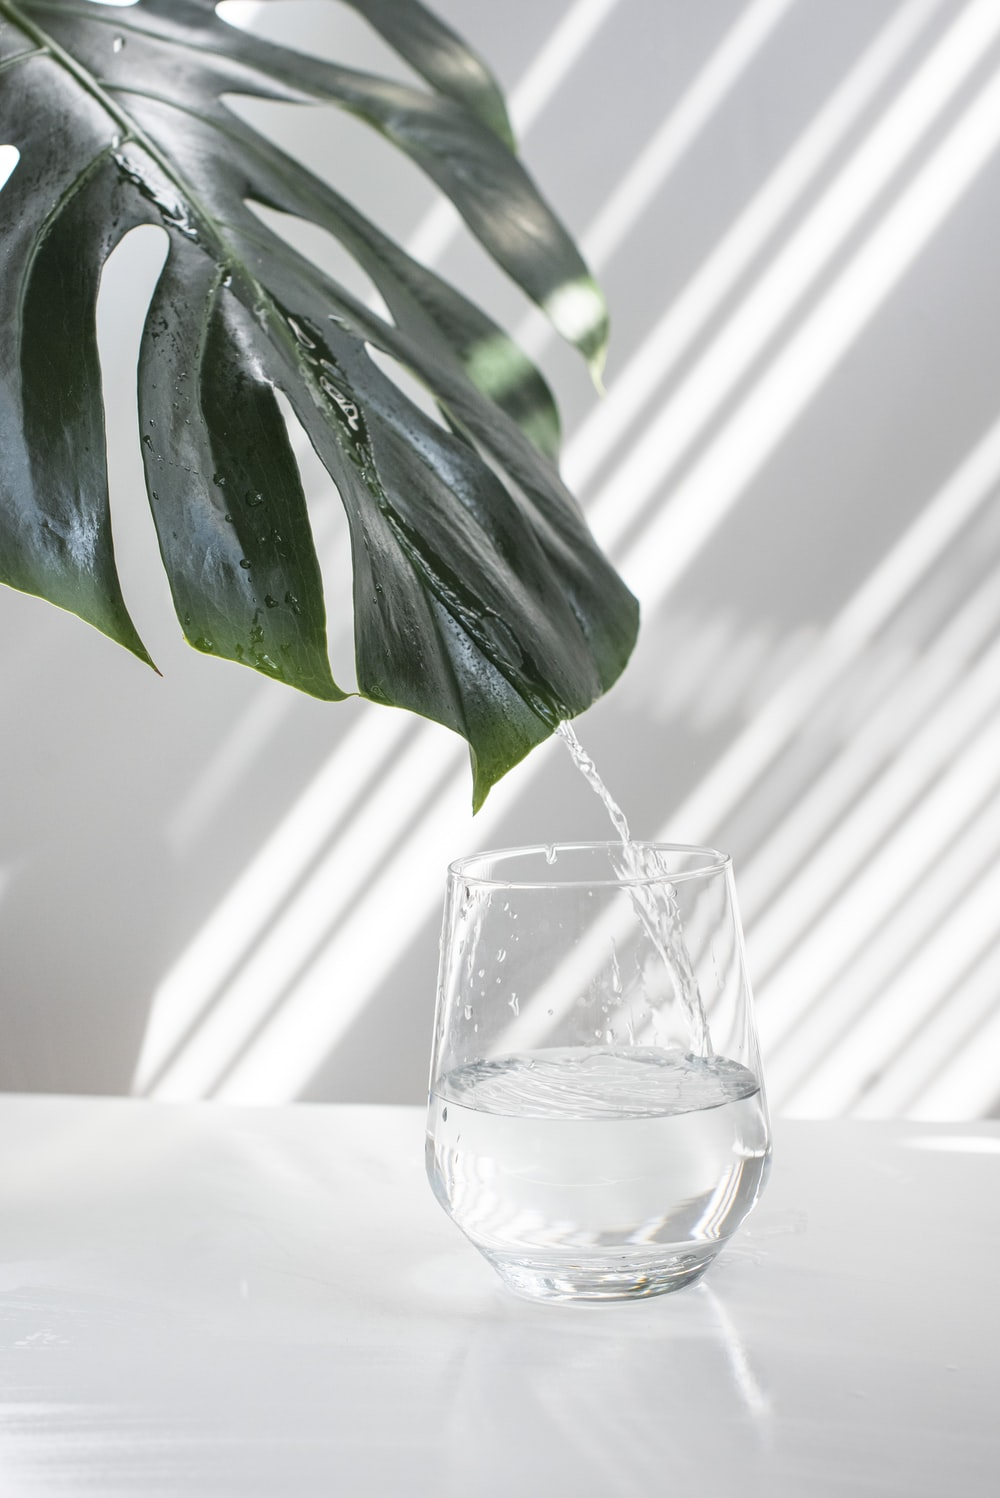 green leaf in clear glass container